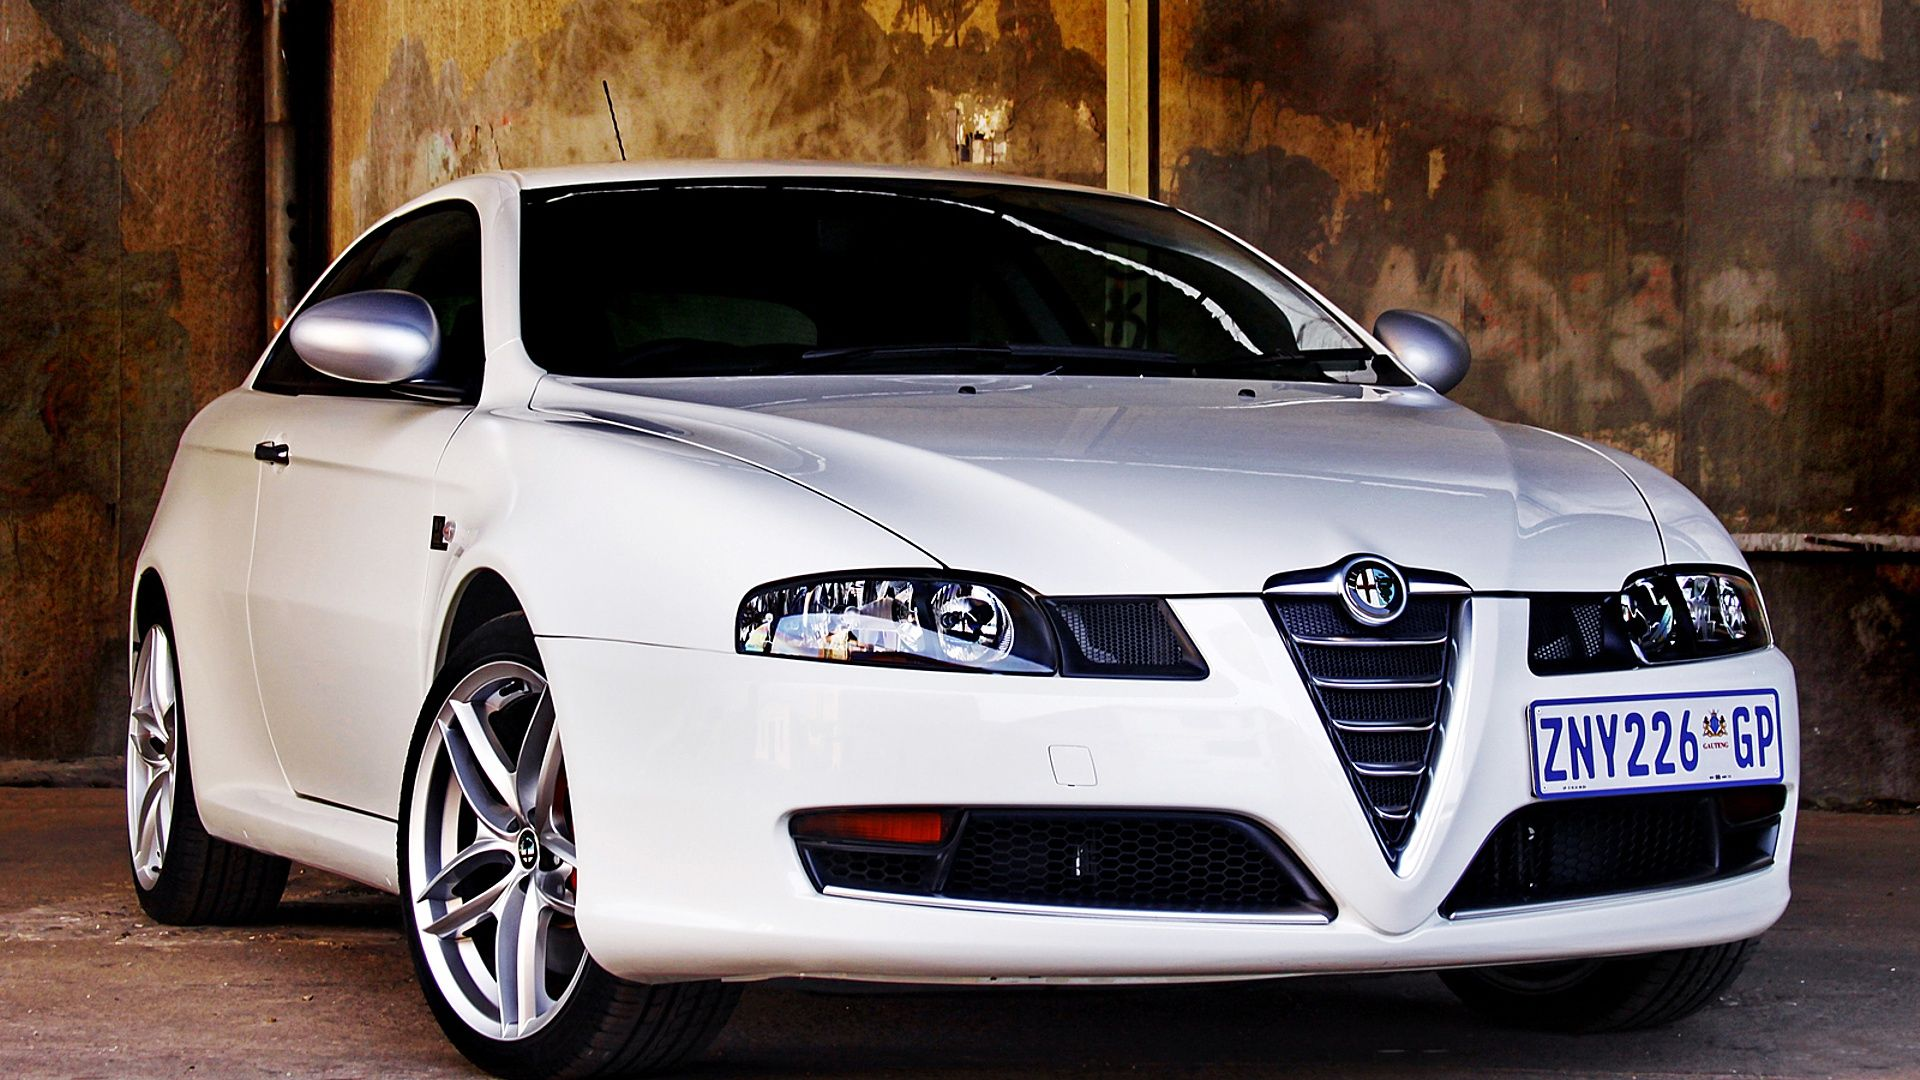 Pin By Hotszots Hd Wallpapers On Vroom Vroom Cars Pinterest Alfa